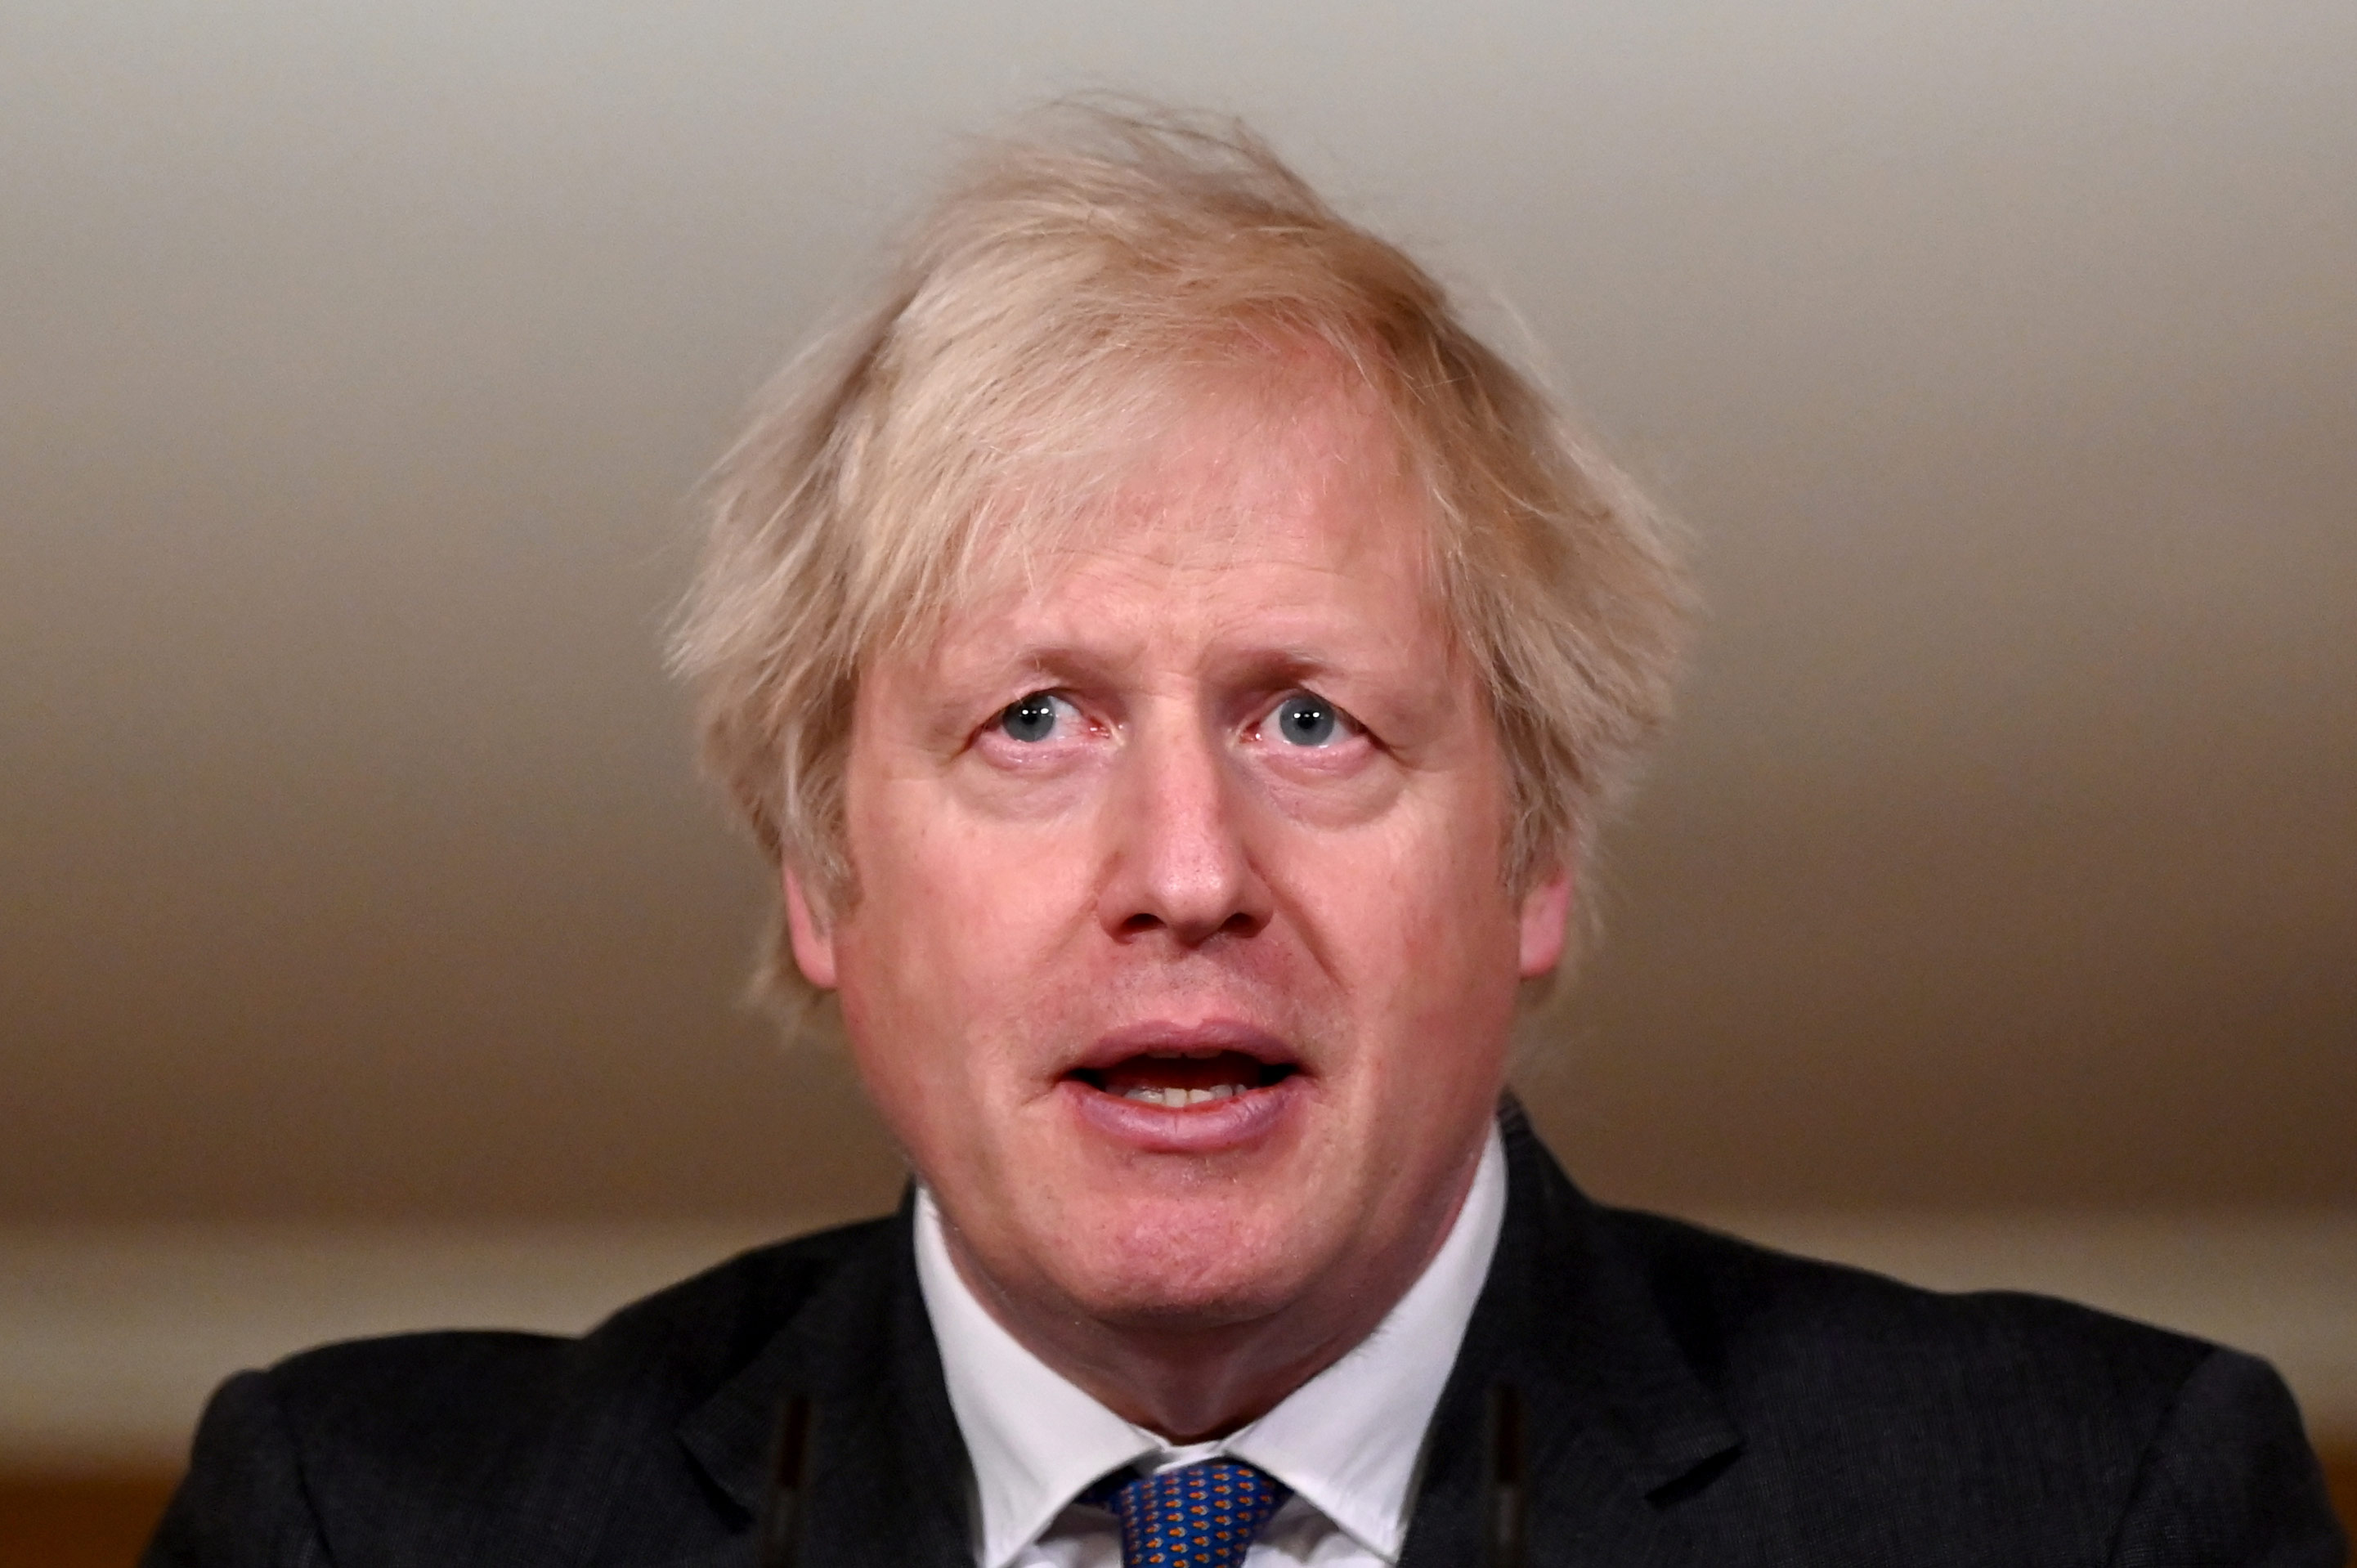 UK Prime Minister Boris Johnson speaks during a coronavirus press conference at 10 Downing Street on January 22, in London.